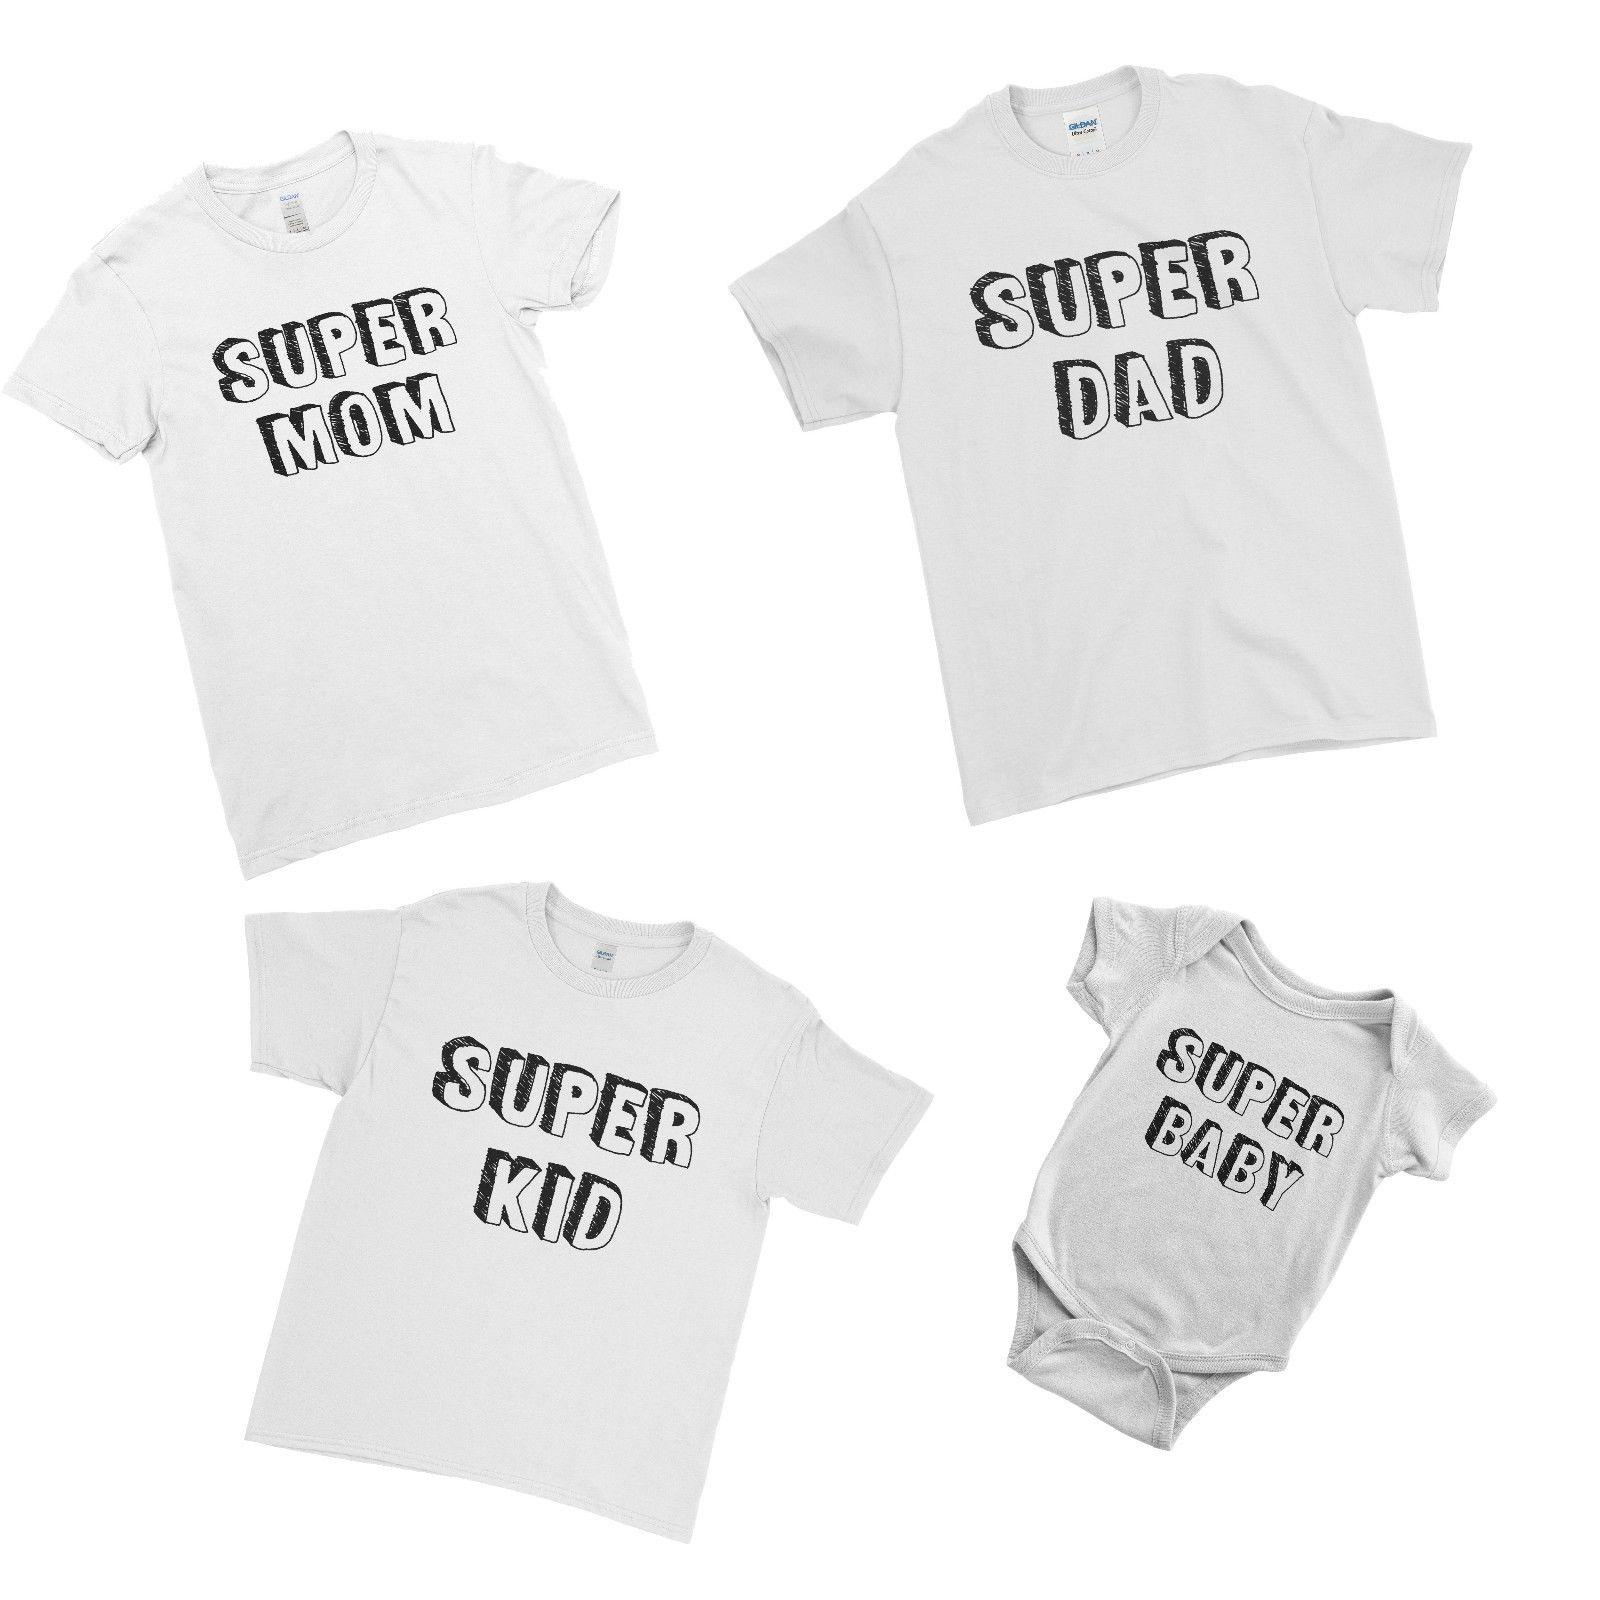 cac69945b Super Dad Mom Baby Bodysuit First Father's Matching Family Couple Team  T-Shirt Cool Casual pride t shirt men Unisex New Fashion